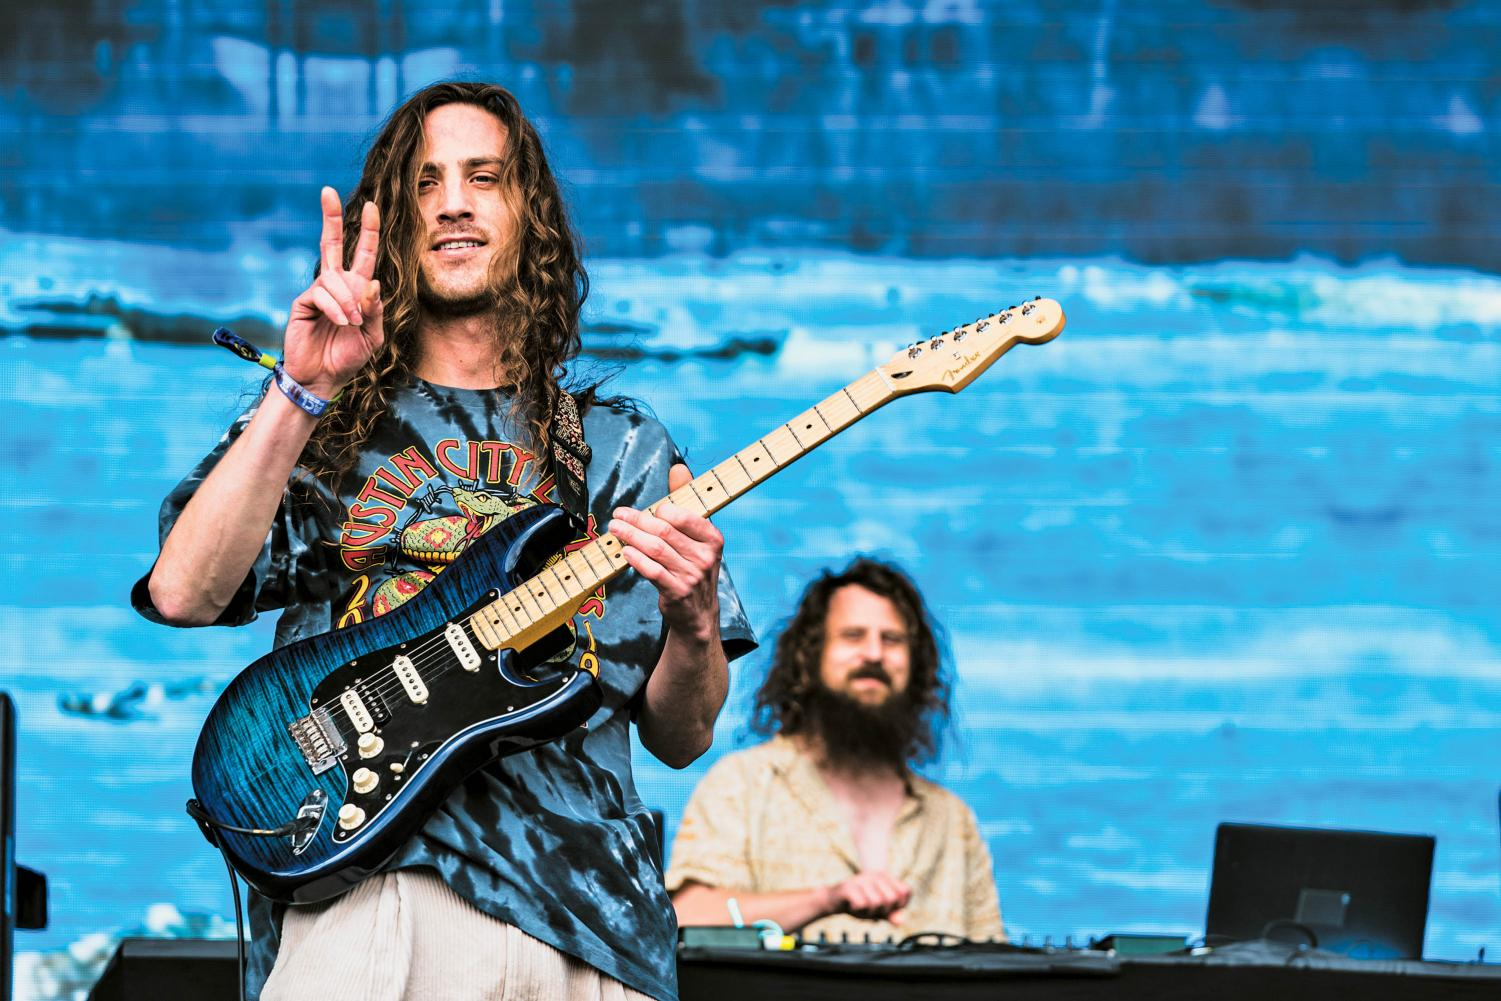 Music duo Hippie Sabotage includes siblings Jeff (left) and Kevin (right) Saurer. The two started playing music professionally back in 2005.